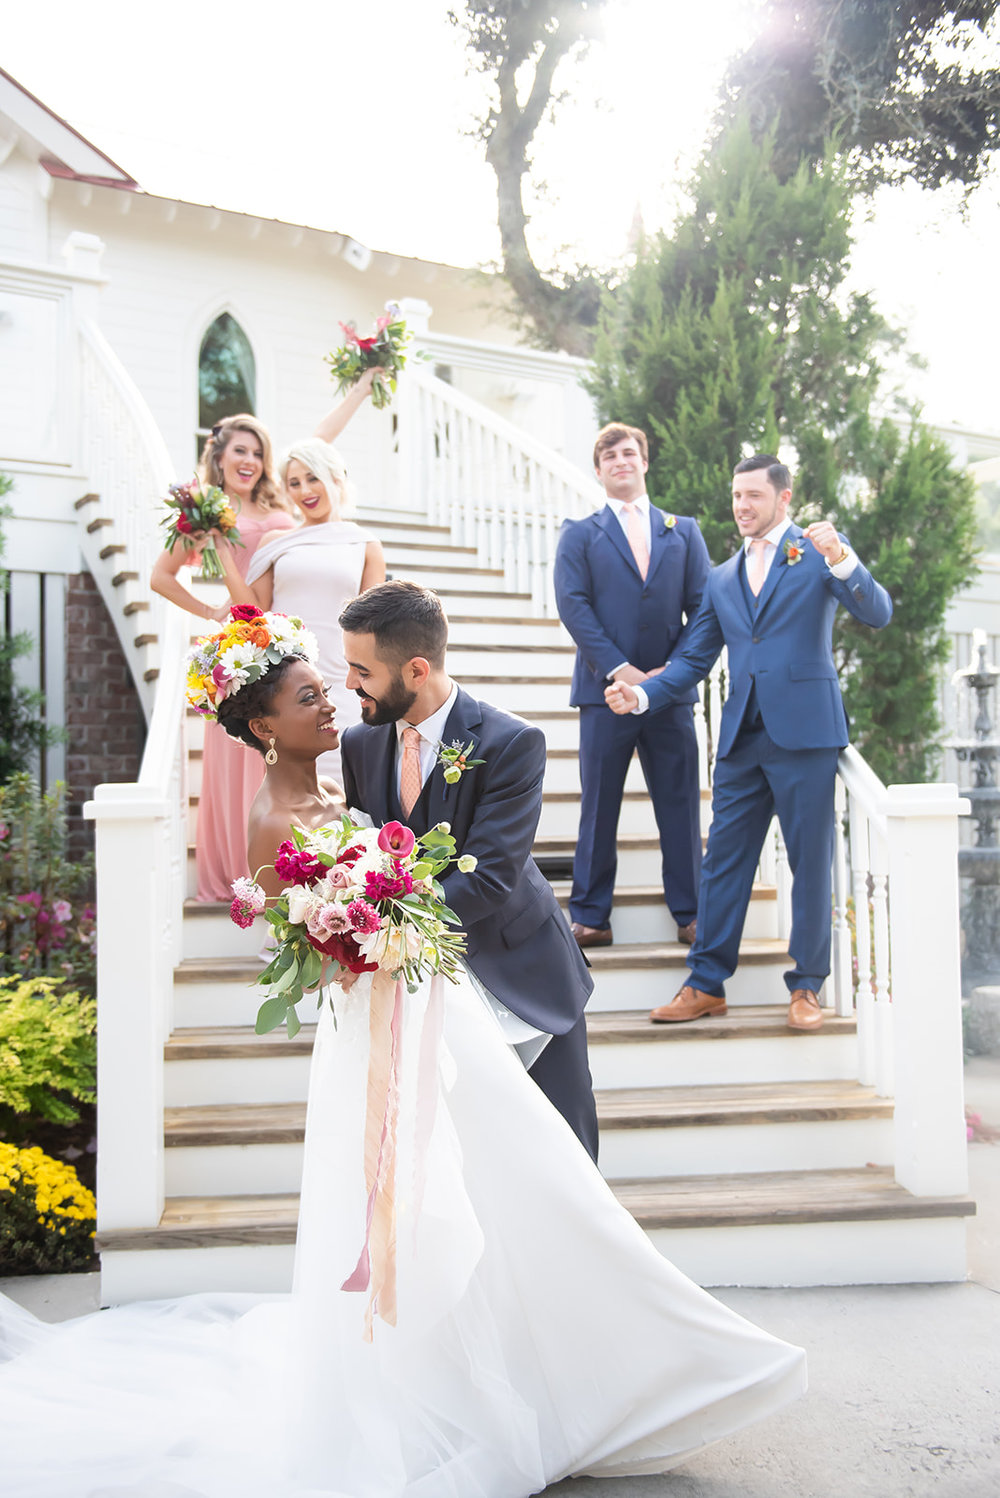 ivory_and_beau_savannah_bridal_shop_the_big_fake_wedding_savannah_lamour_by_calla_blanche_savannah_wedding_Dress_savannah_Wedding_gown_Savannah_wedding_planner_savannah_wedding_coordinator_savannah_wedding_florist_ruth_terrero_photography_10.jpg